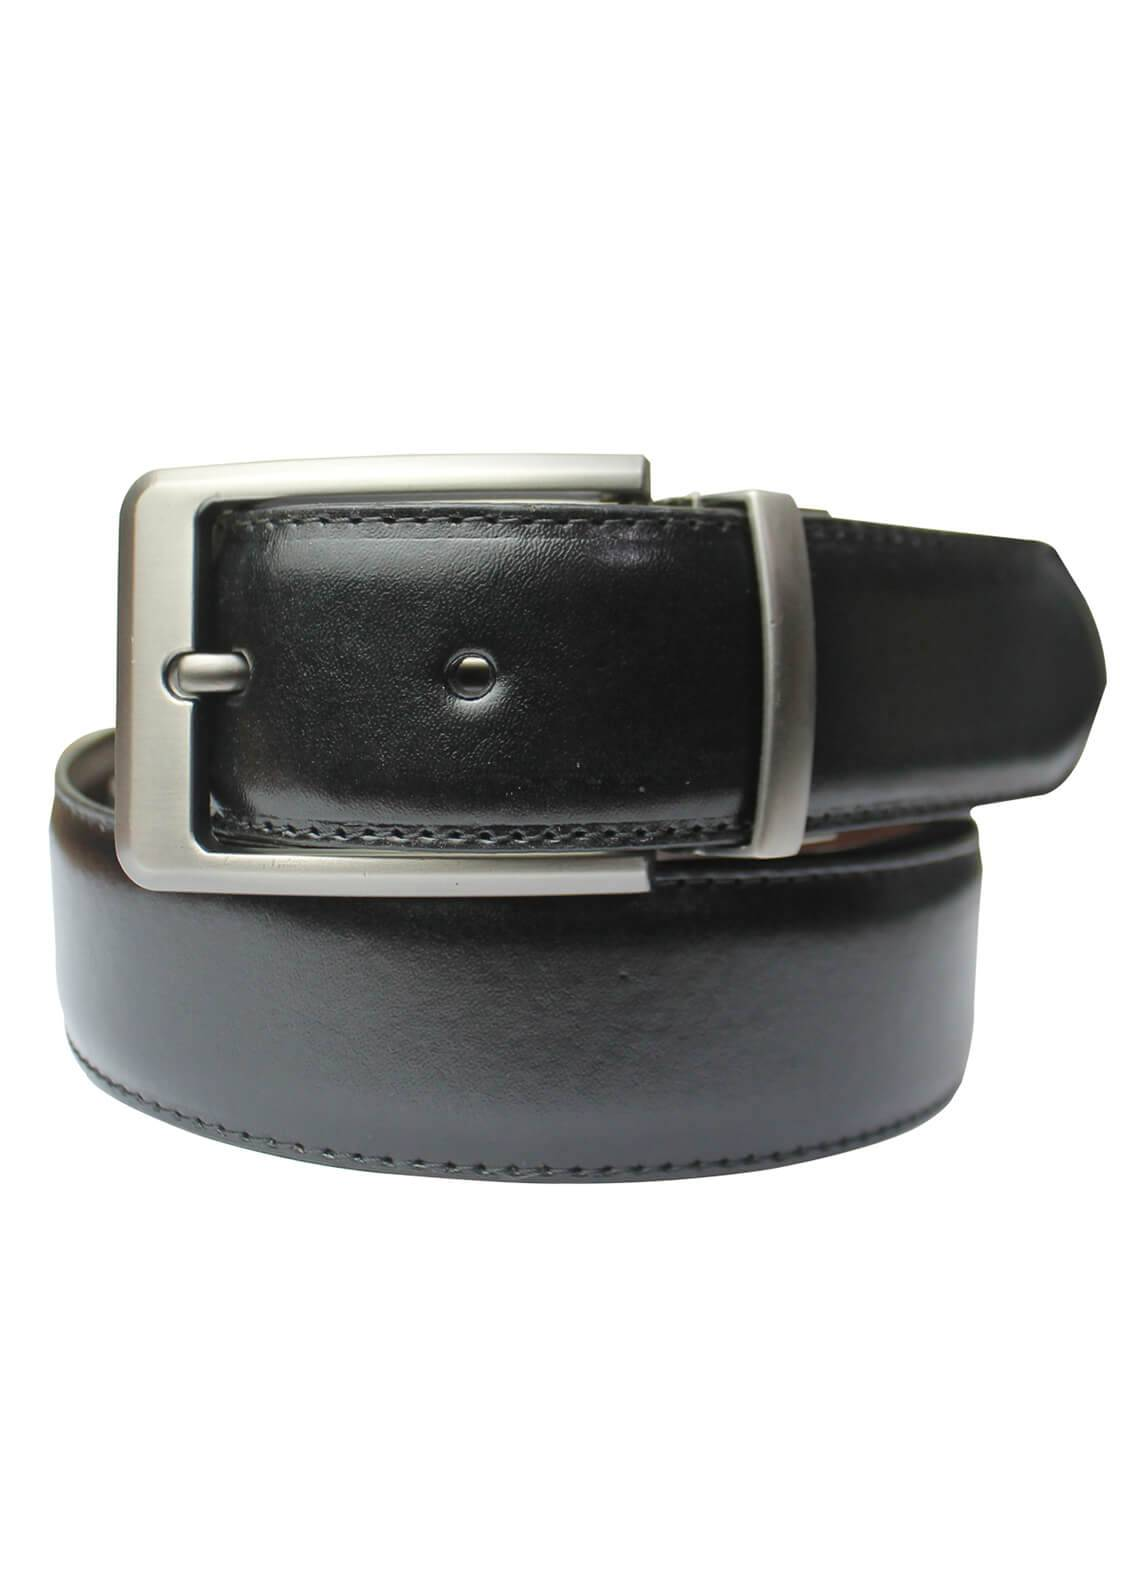 Shahzeb Saeed Textured Leather Men Belts BELT-152 Black - Casual Accessories